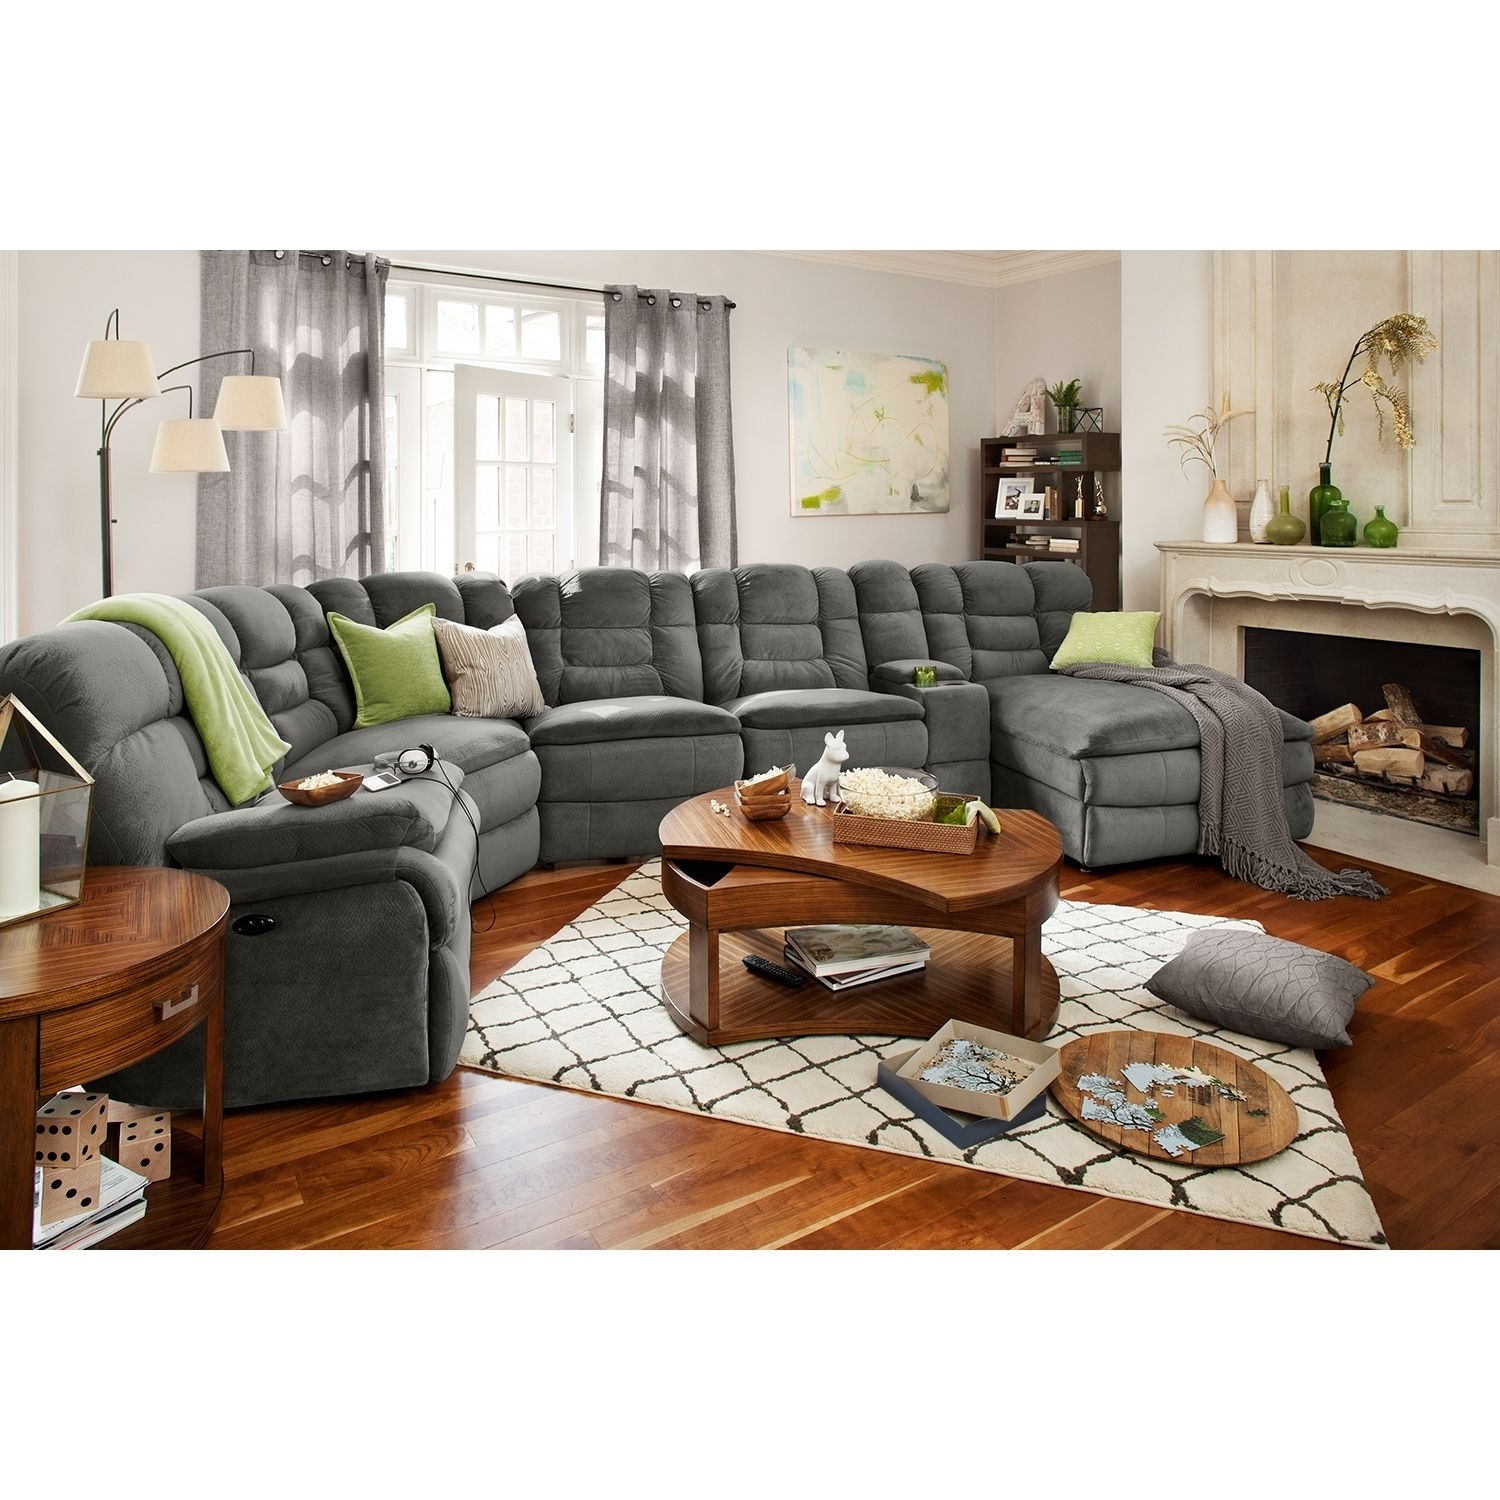 Big Softie 6 Piece Power Reclining Sectional With Right Facing Inside Jackson 6 Piece Power Reclining Sectionals With  Sleeper (Image 6 of 25)